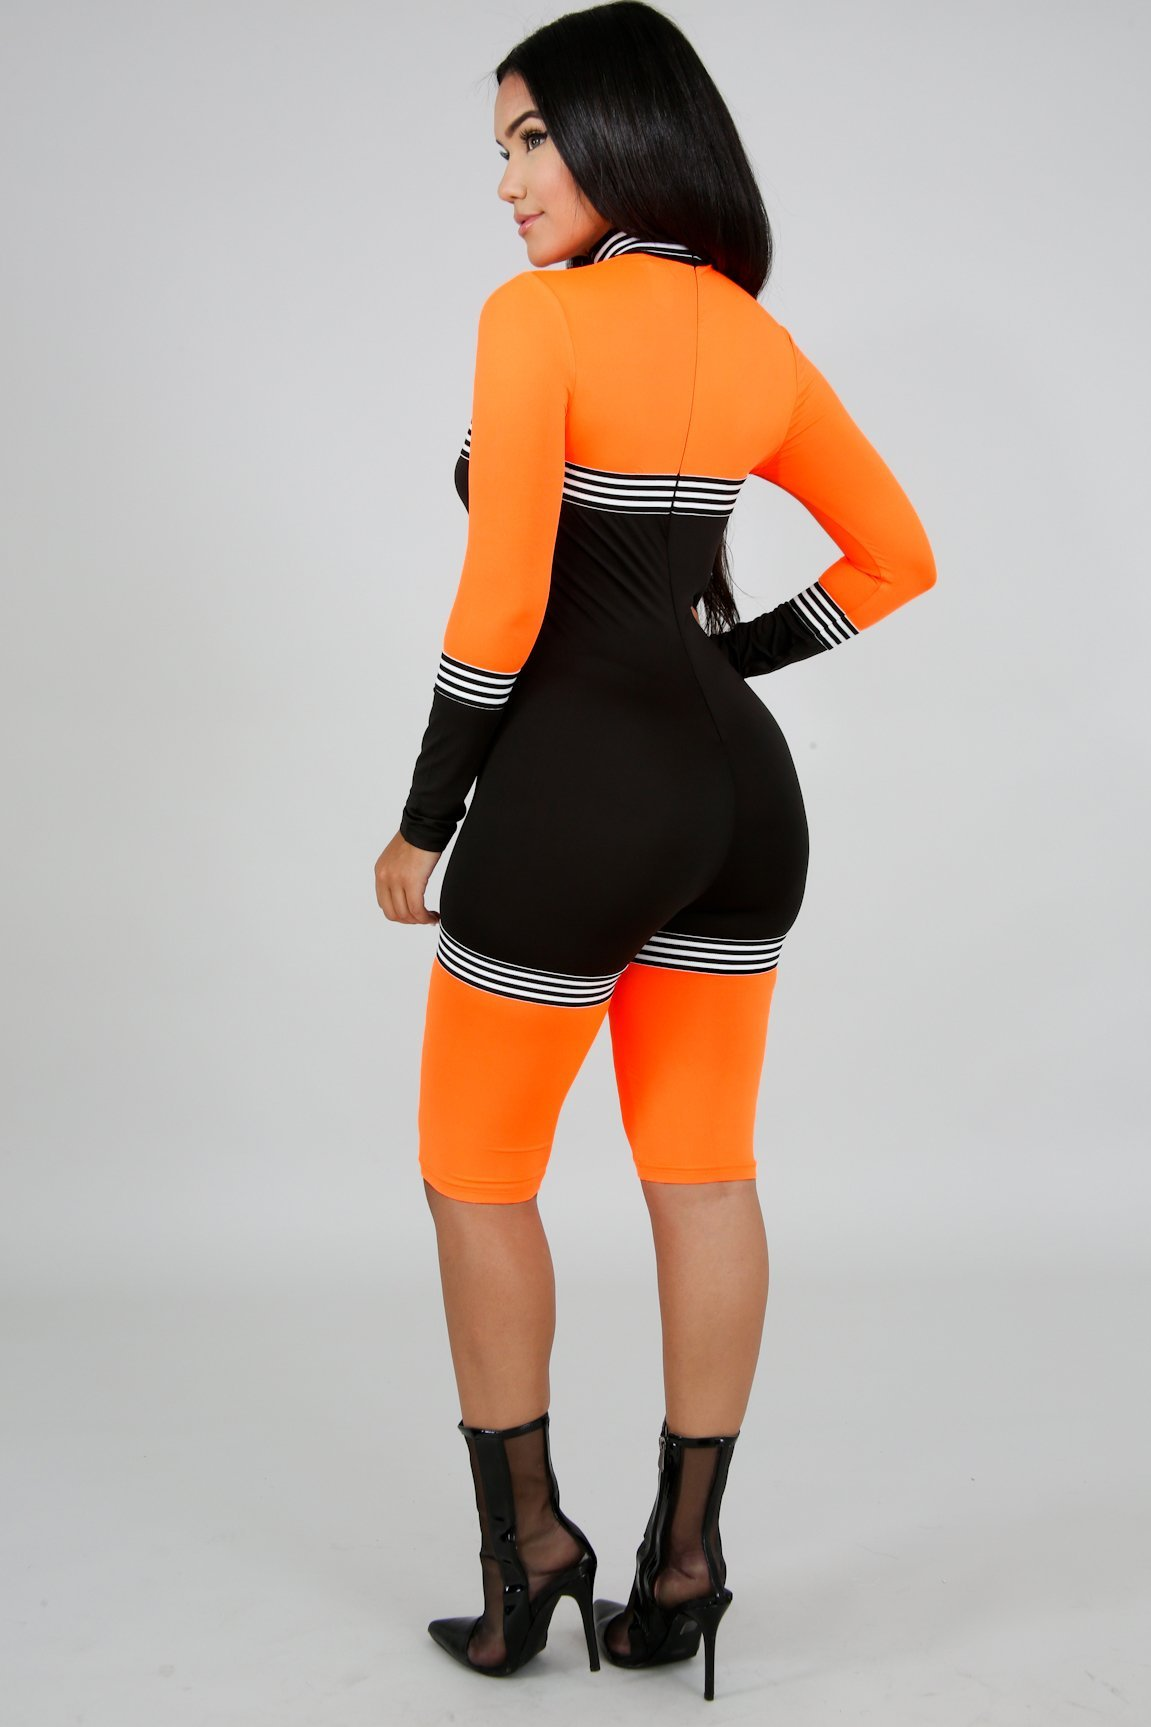 af0dc410f1a9 ... Neon sporty Romper - The slay clothing brand ...